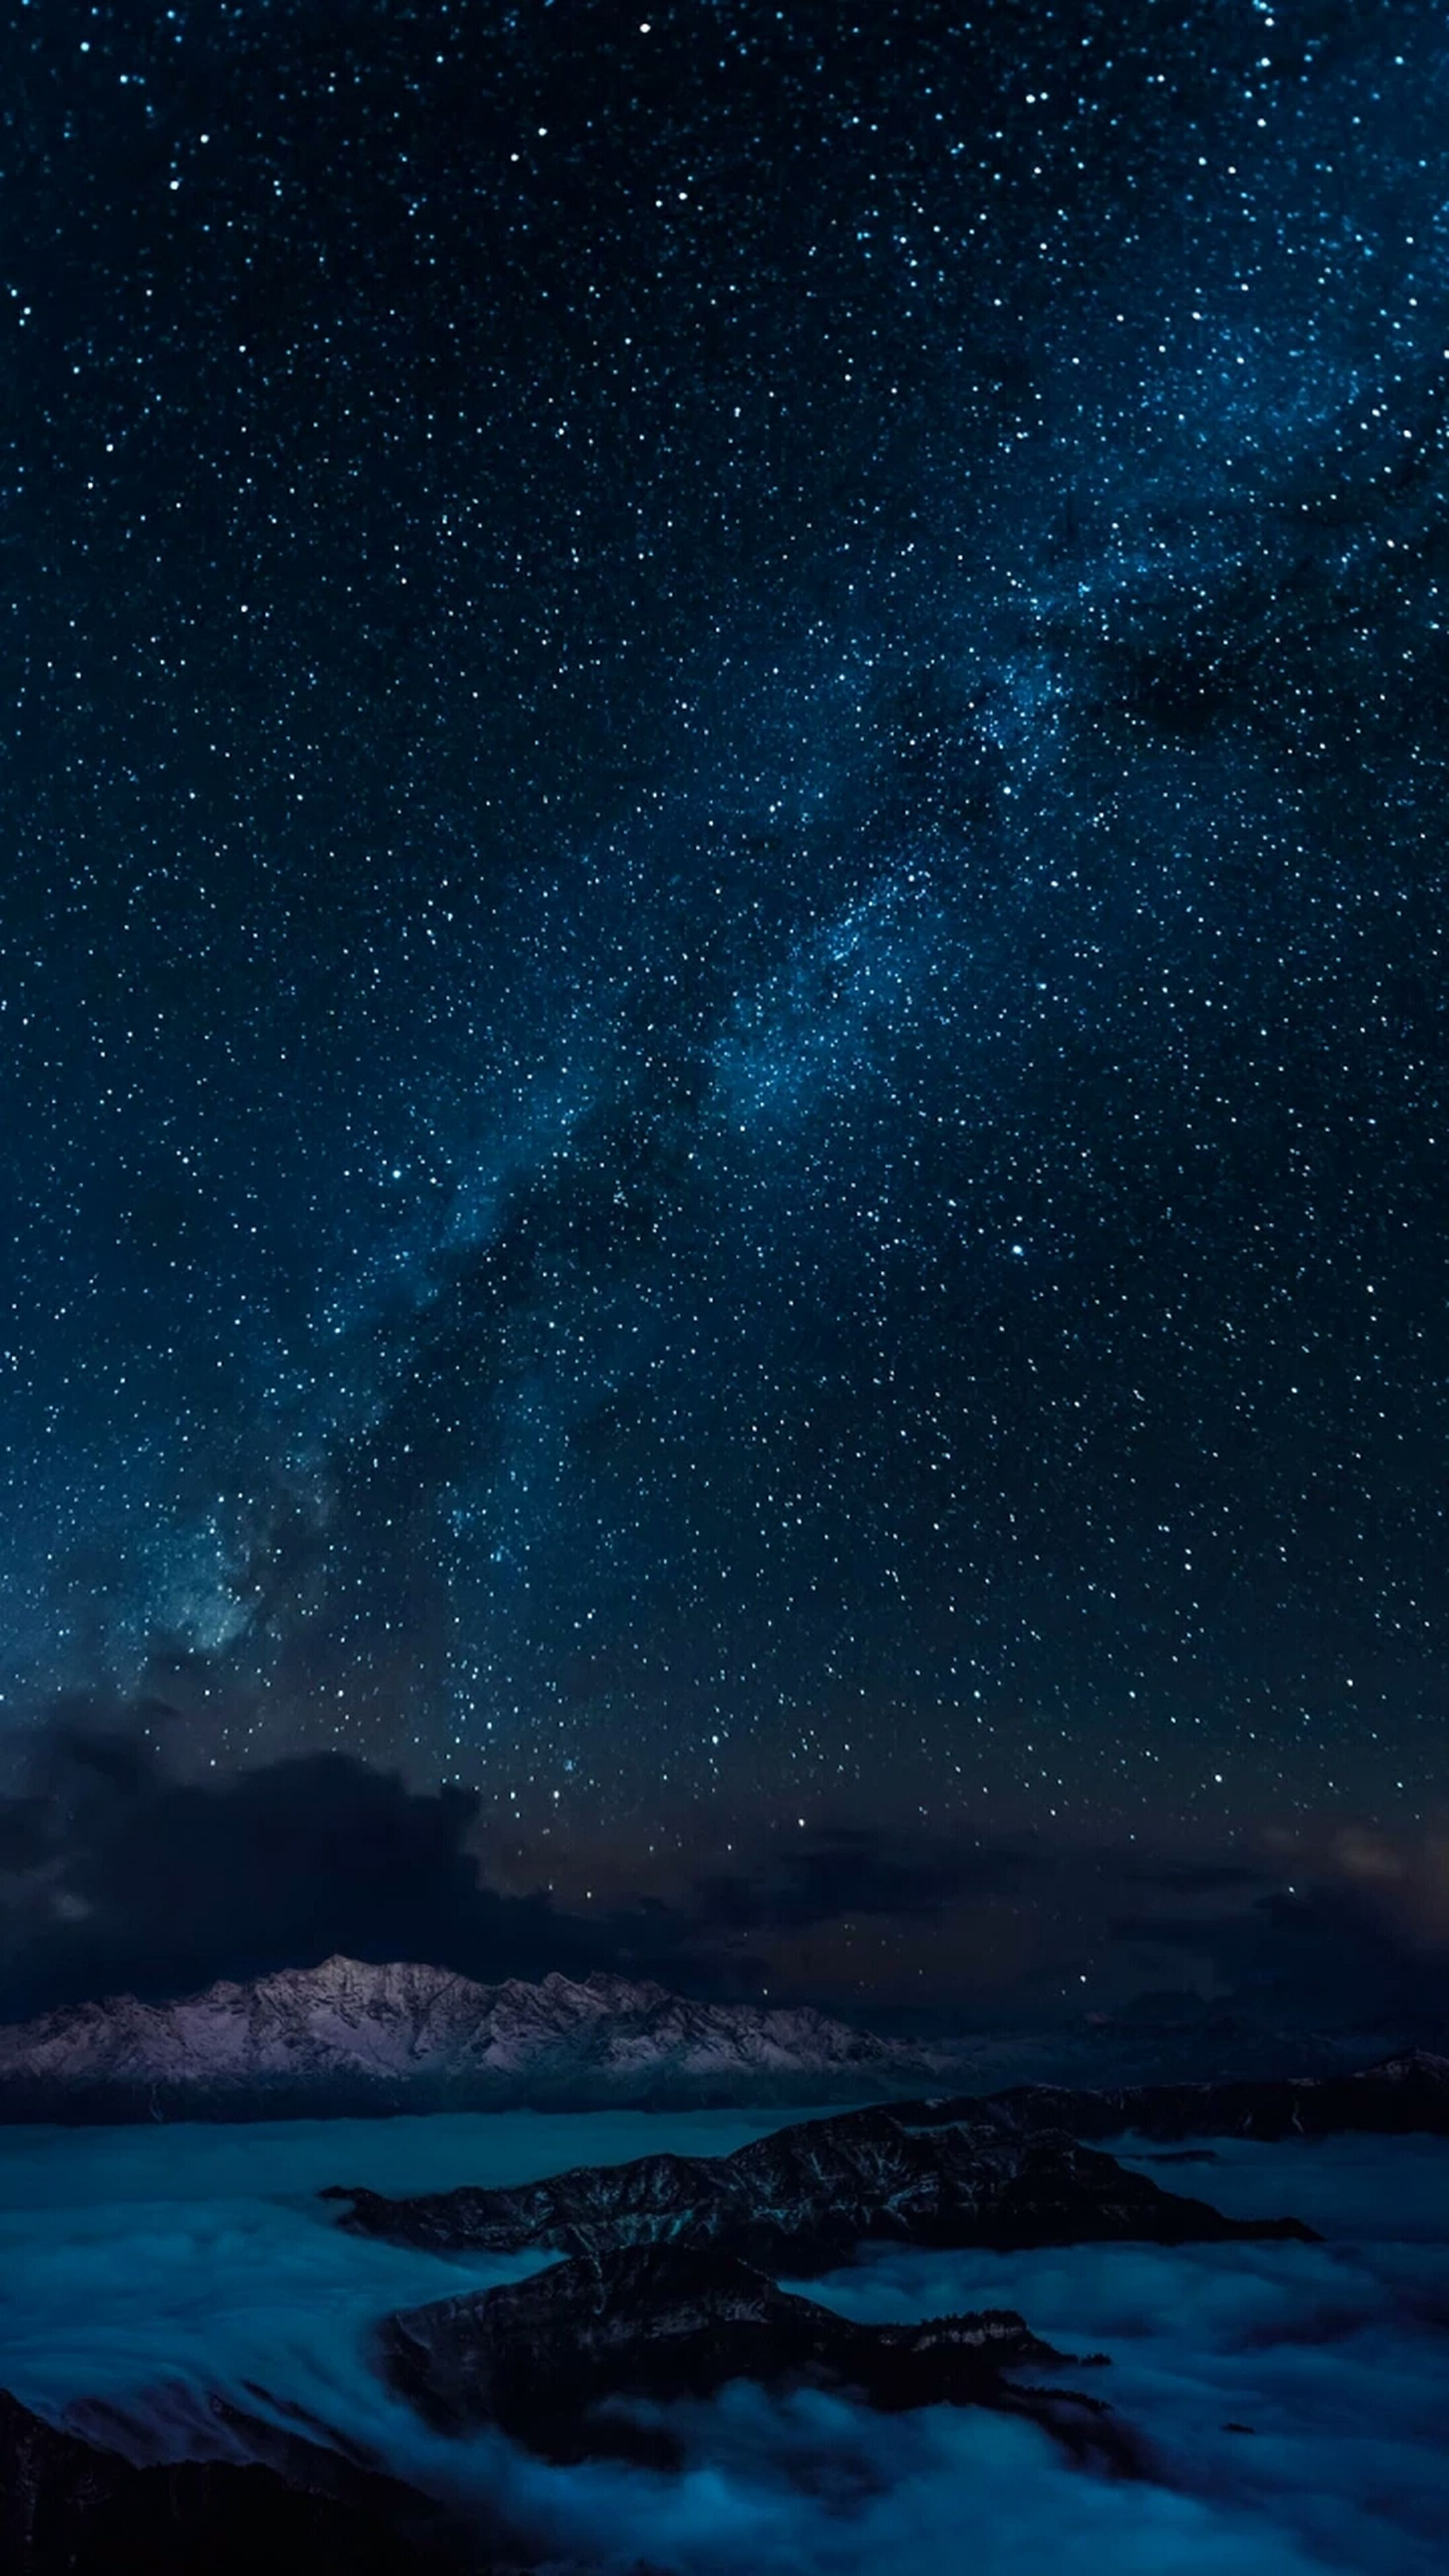 night, star - space, astronomy, milky way, sky, space, scenics, galaxy, beauty in nature, winter, snow, nature, cold temperature, no people, landscape, outdoors, illuminated, mountain